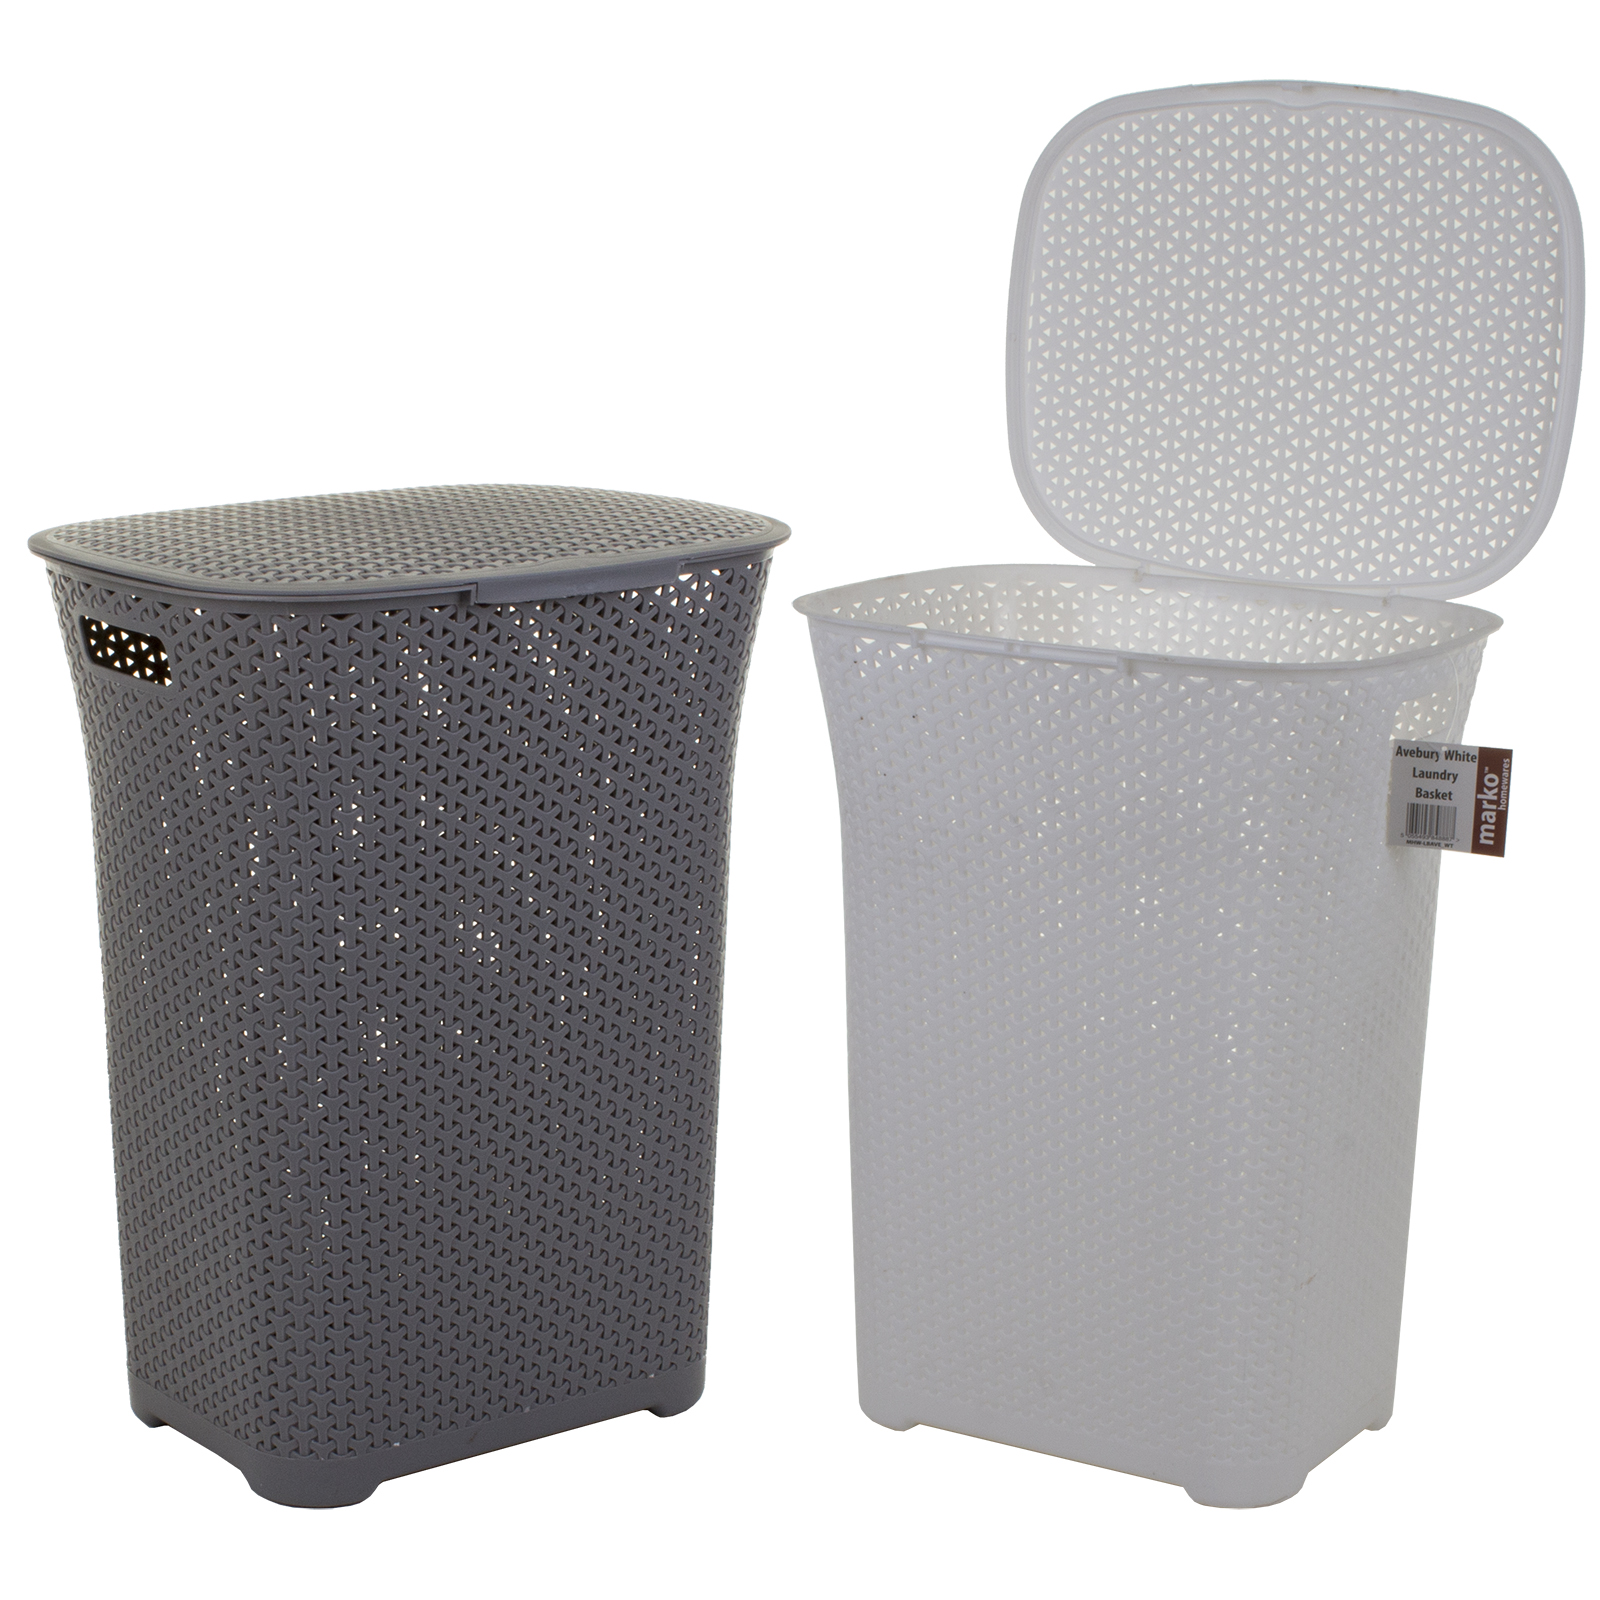 Plastic laundry basket clothes clothing washing hamper storage bin with clip lid - Plastic hamper with lid ...